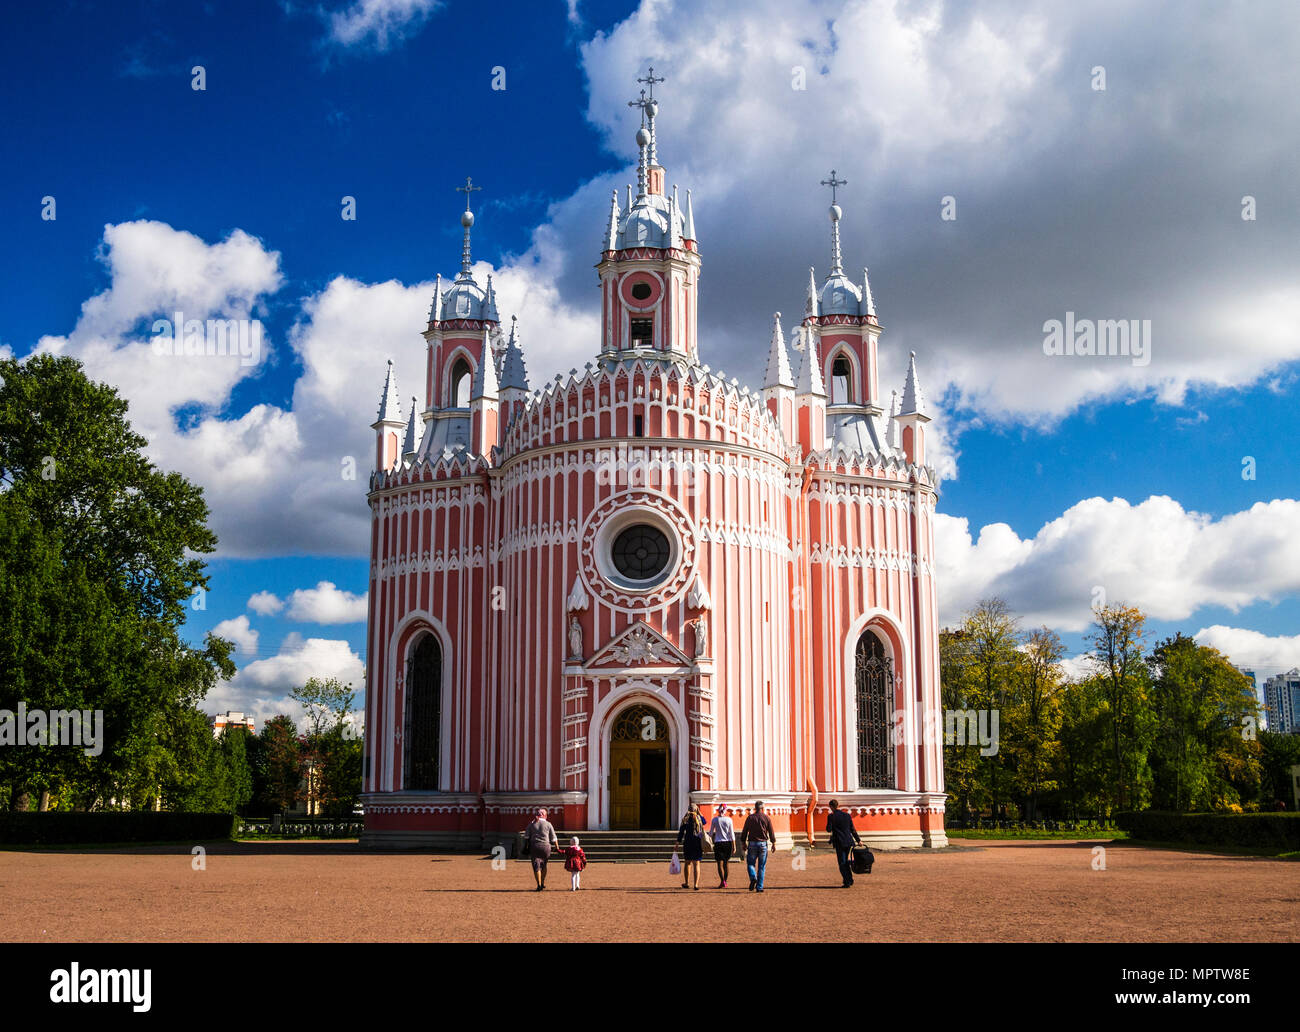 Saint-pétersbourg, Russie : Chesme Église Photo Stock